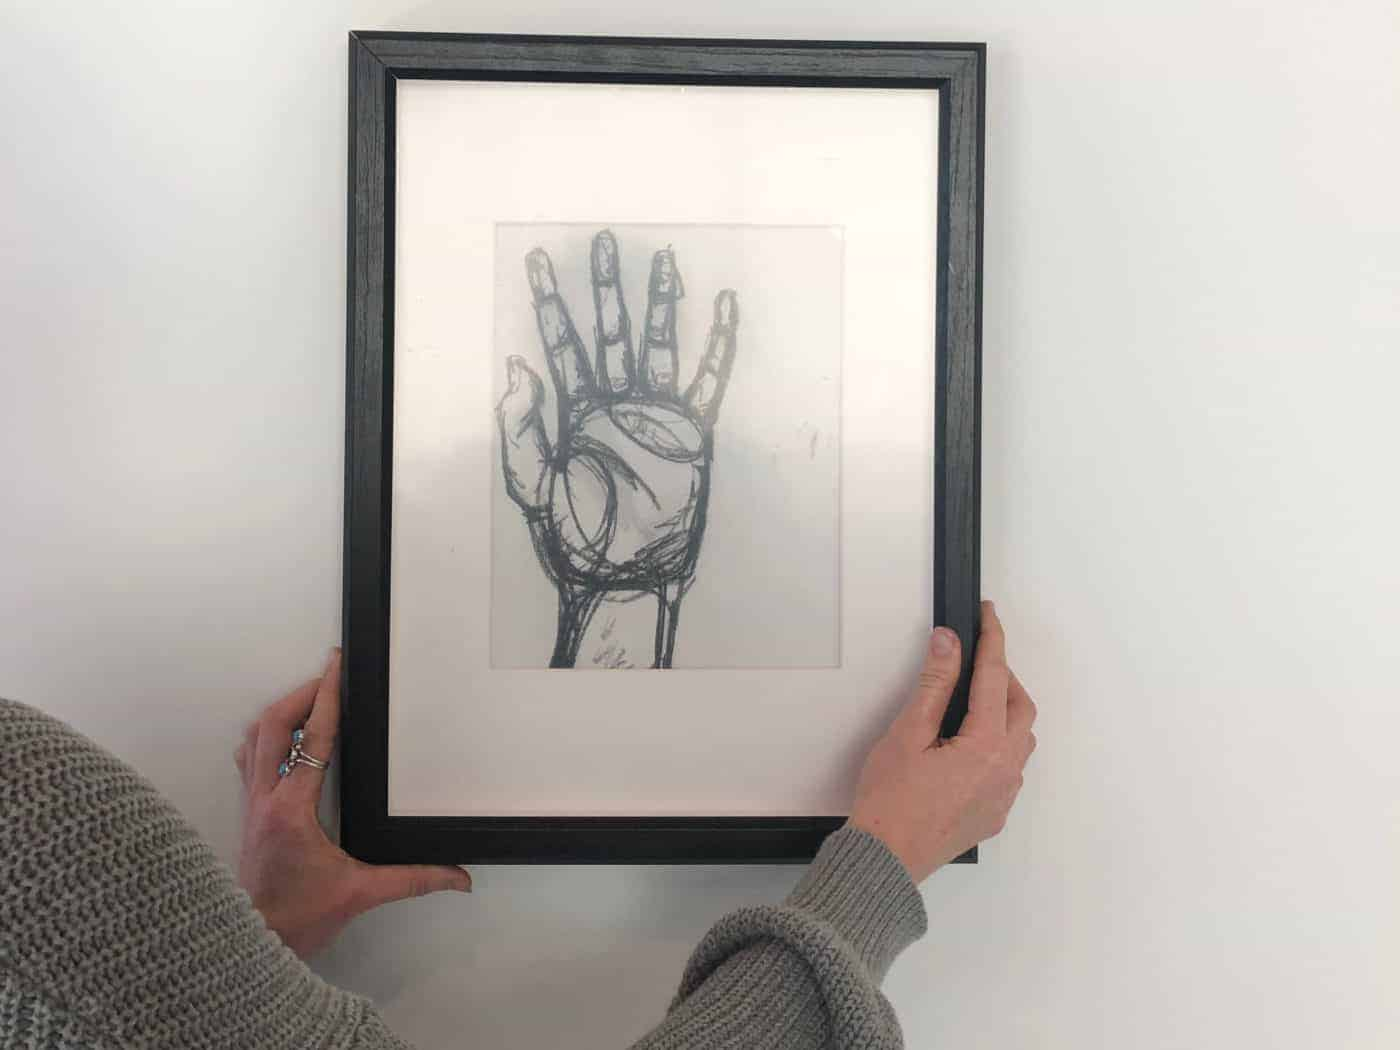 photo of a framed picture of a hand